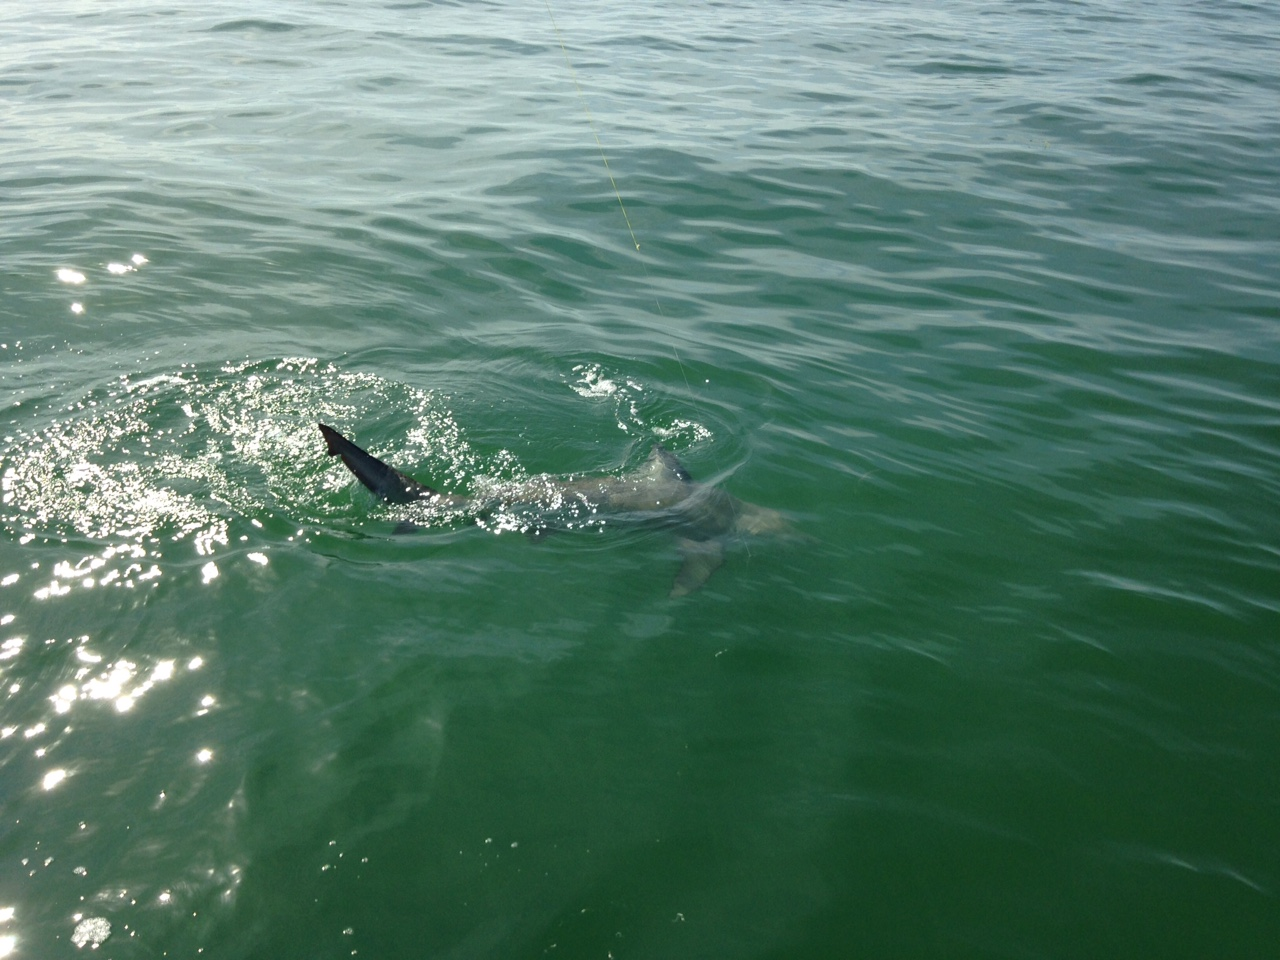 Big bull shark caught off Marathon last week. Shark fishing charters offer exciting action with big fish.